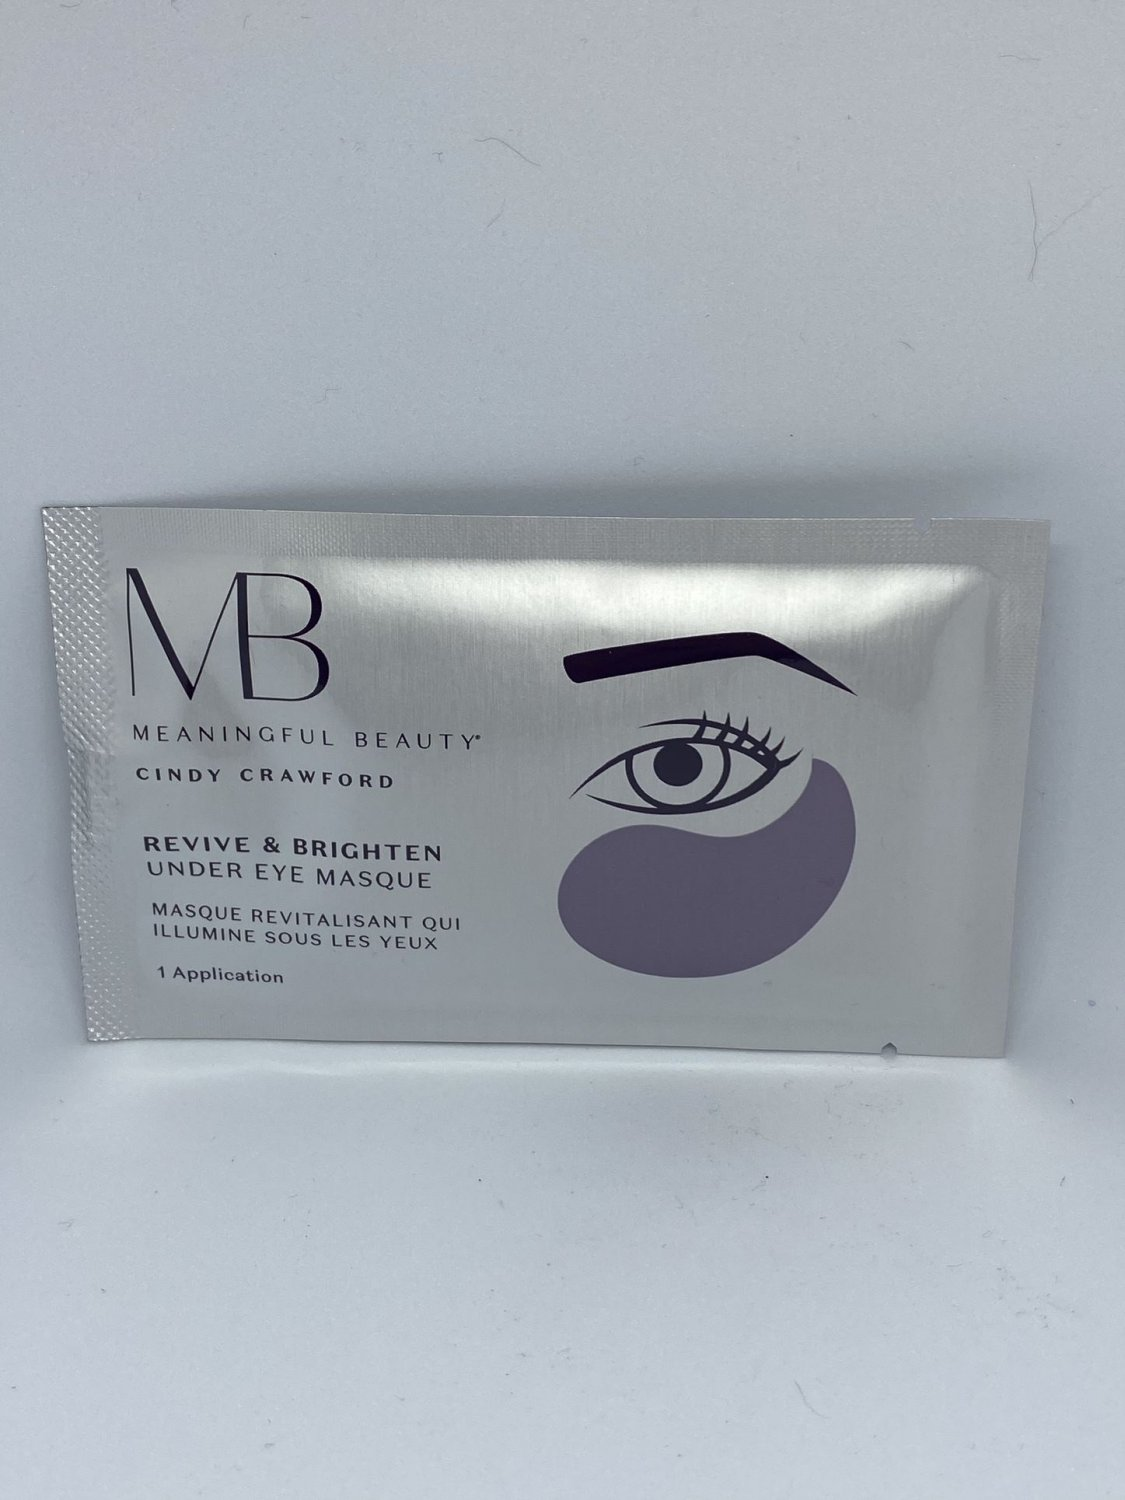 Meaningful Beauty by Cindy Crawford Revive & Brighten Under Eye Masque One Pair Mask Travel Size